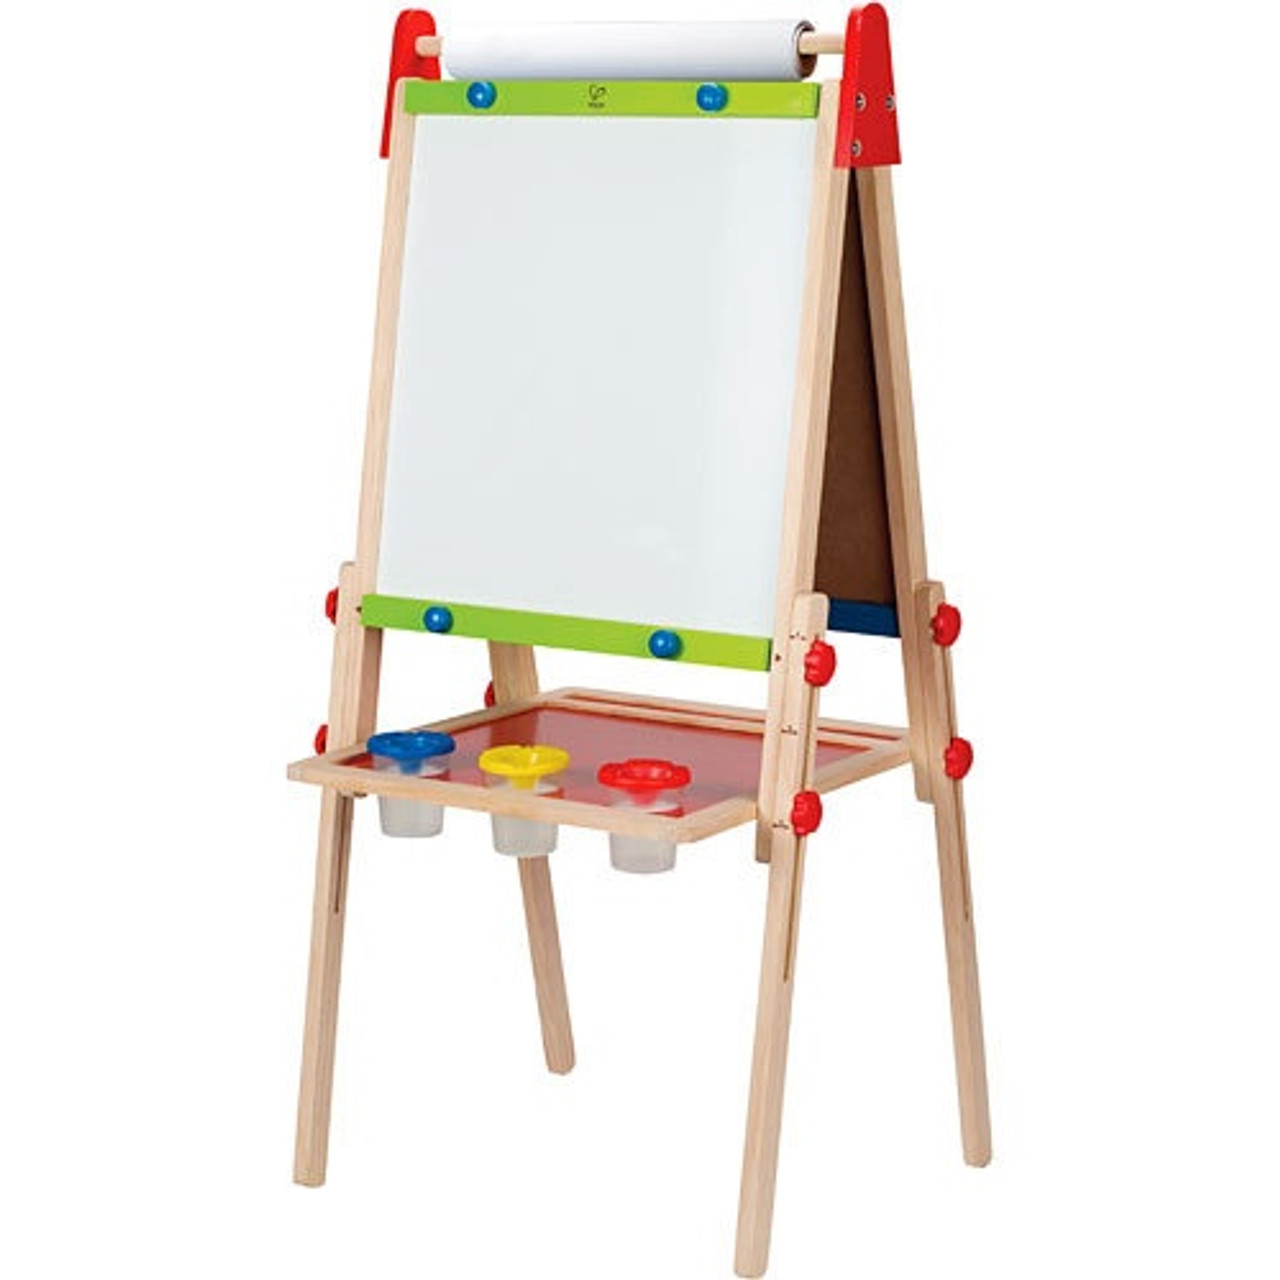 ALL- IN-1- EASEL